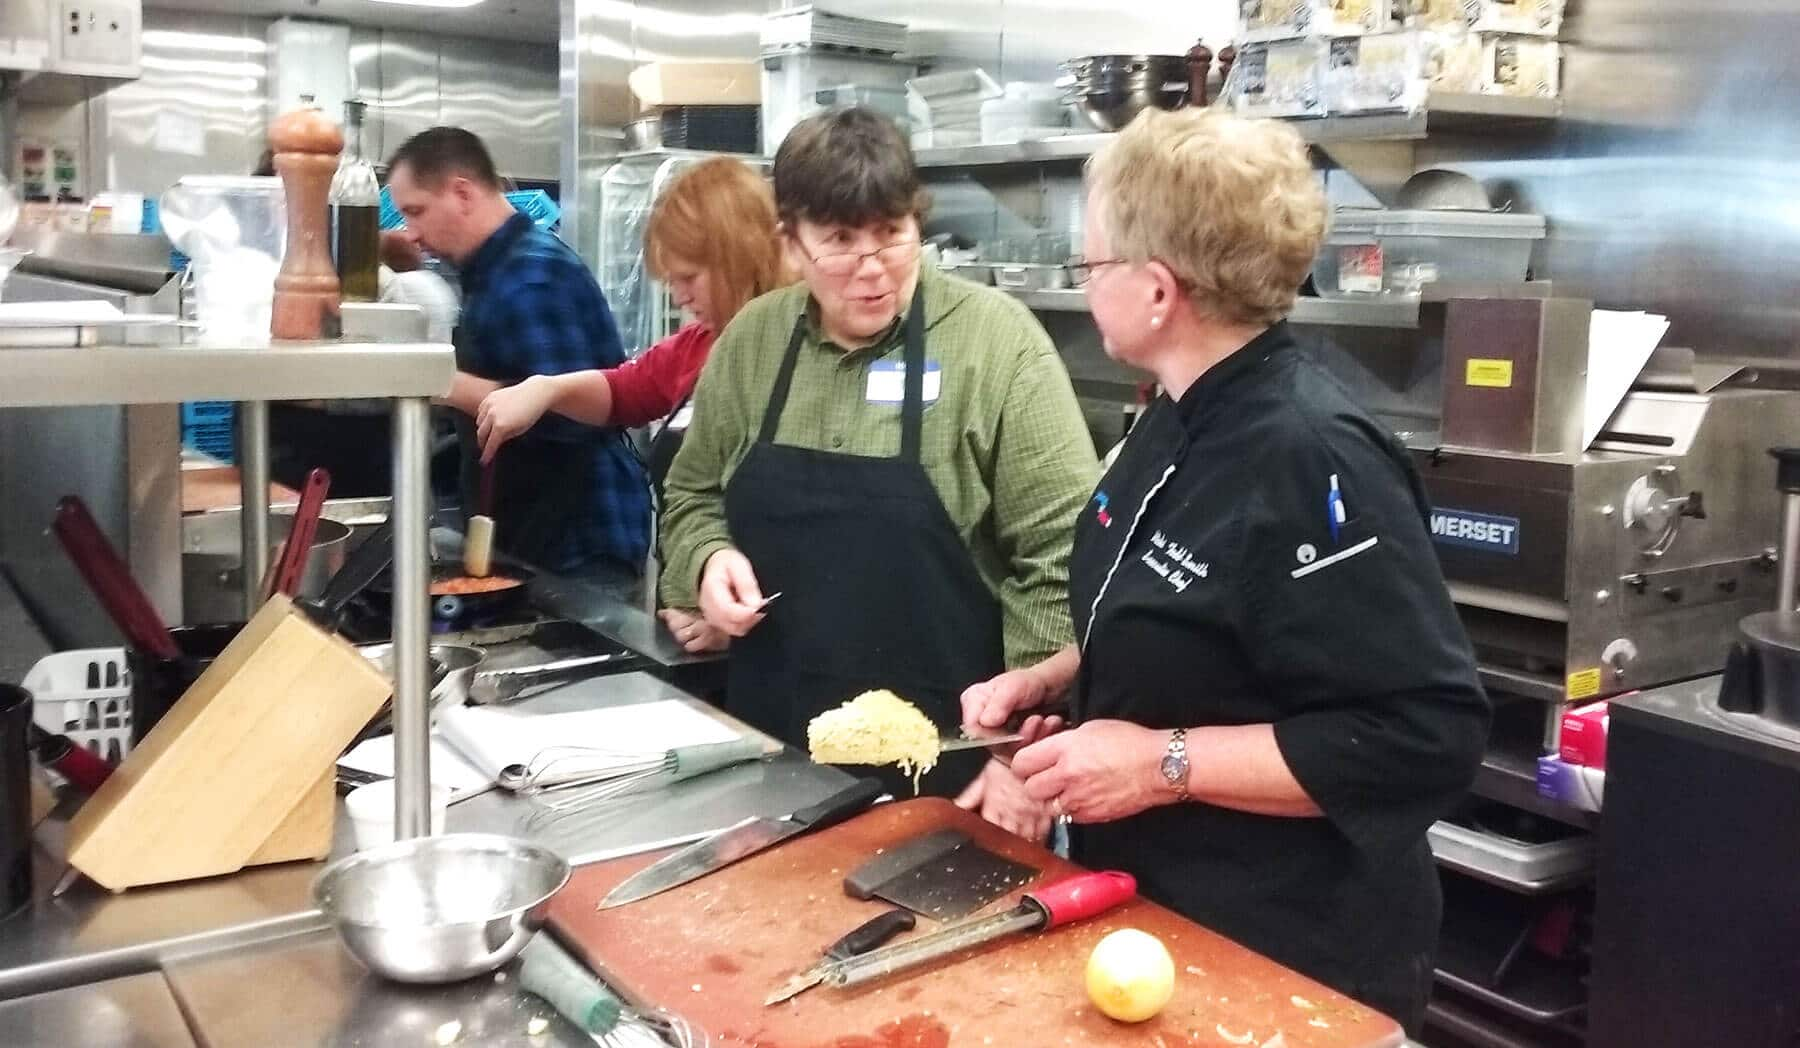 Chef Vicki Todd Smith teaches her Polenta, Pasta and Potatoes class